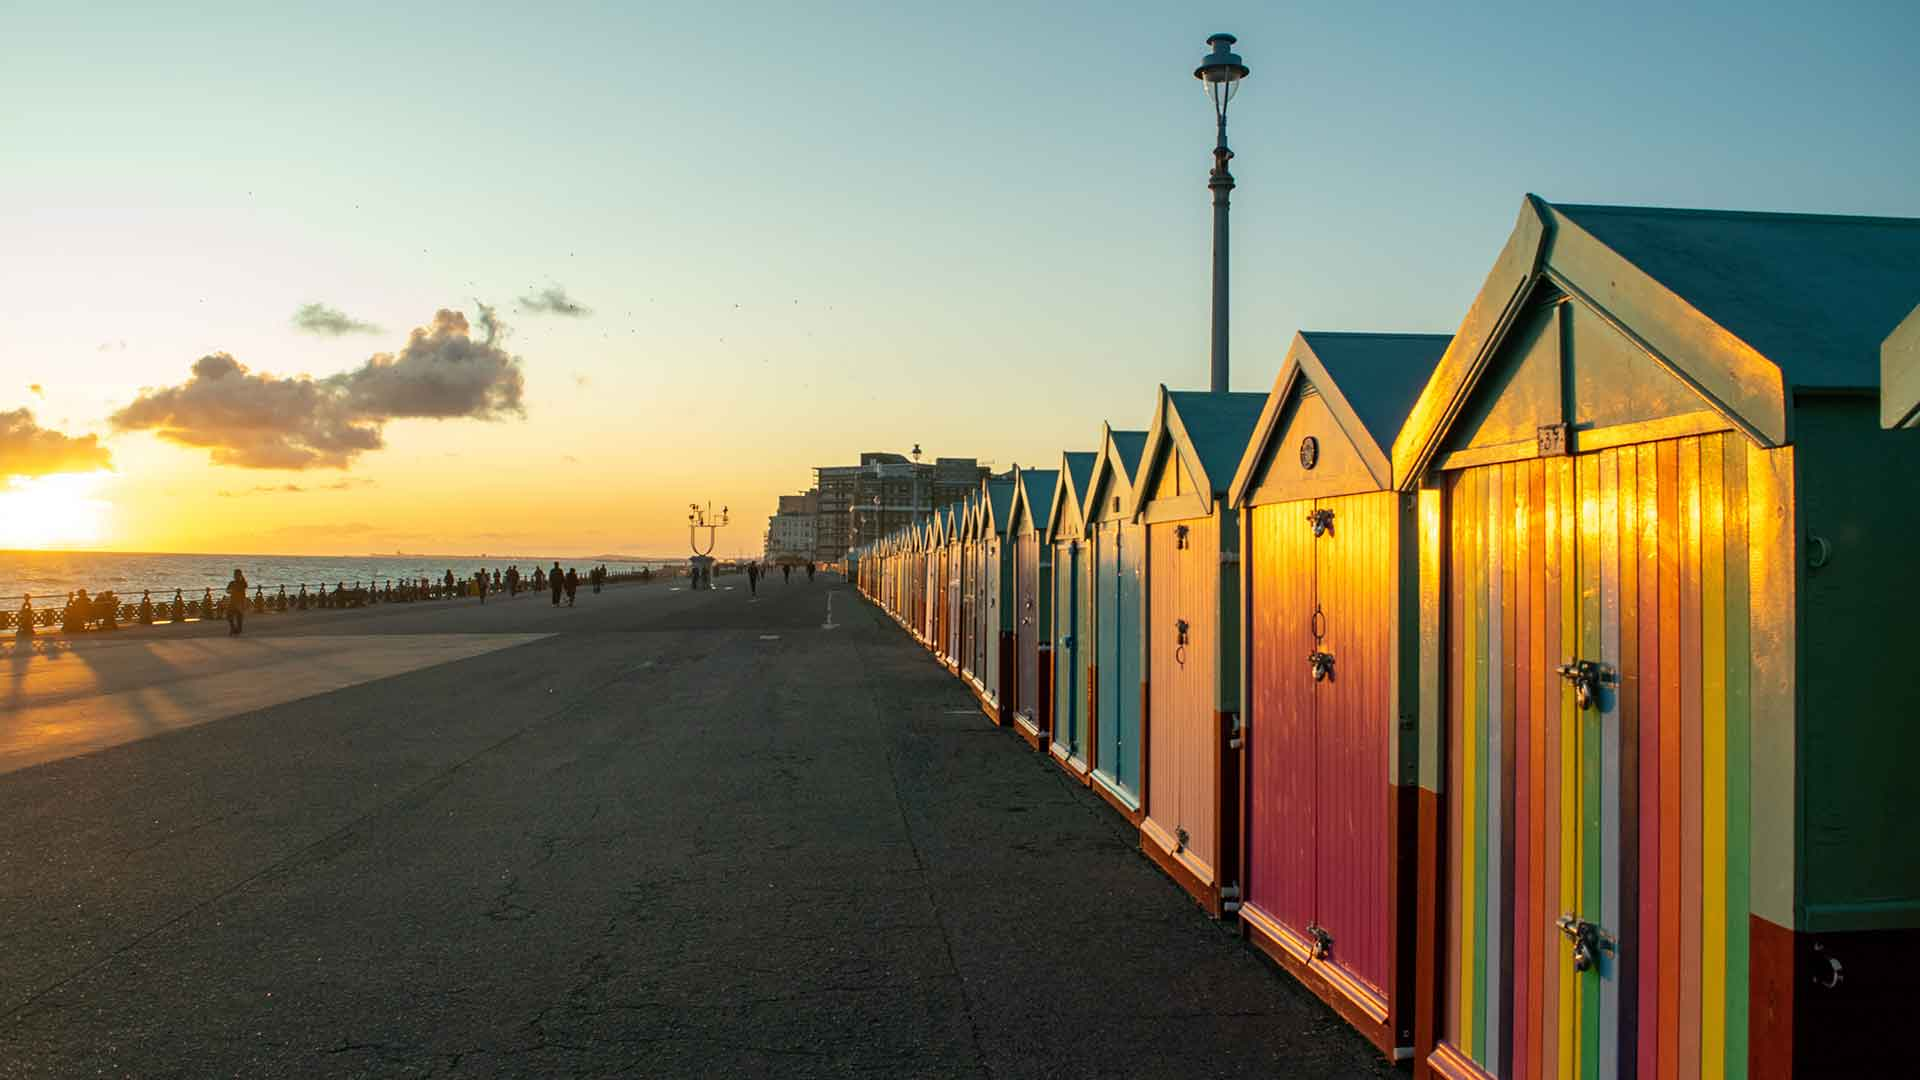 Hove's famous beach huts at sunset